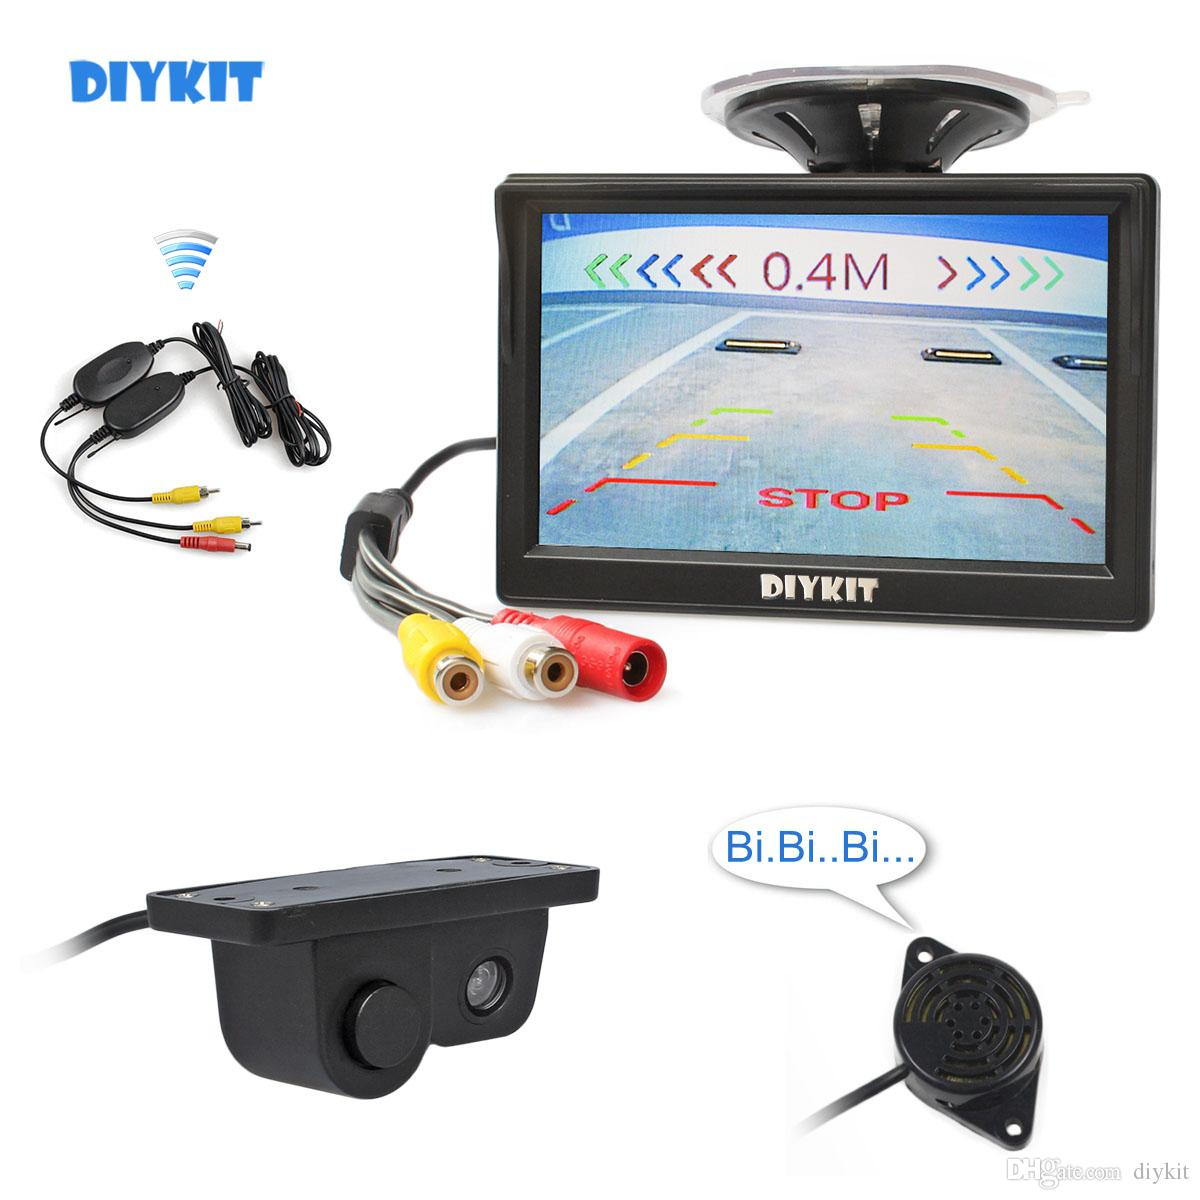 DIYKIT Wireless 5inch Car Monitor + Waterproof Parking Radar Sensor Car Camera Rear View Camera Parking System Kit